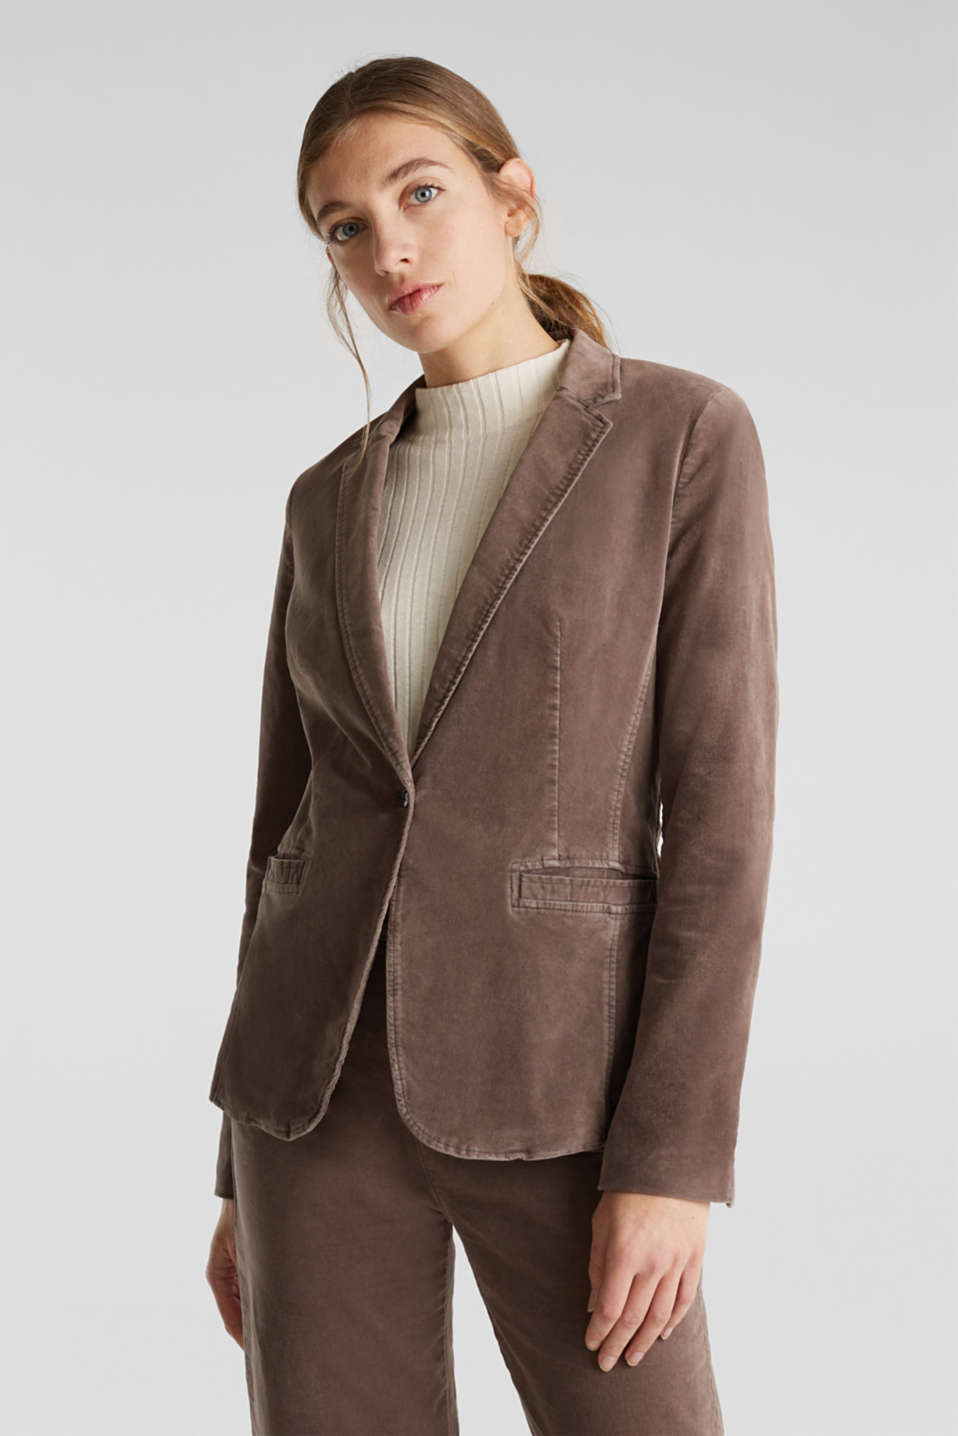 Velvet blazer with stretch for comfort, LIGHT TAUPE, detail image number 0